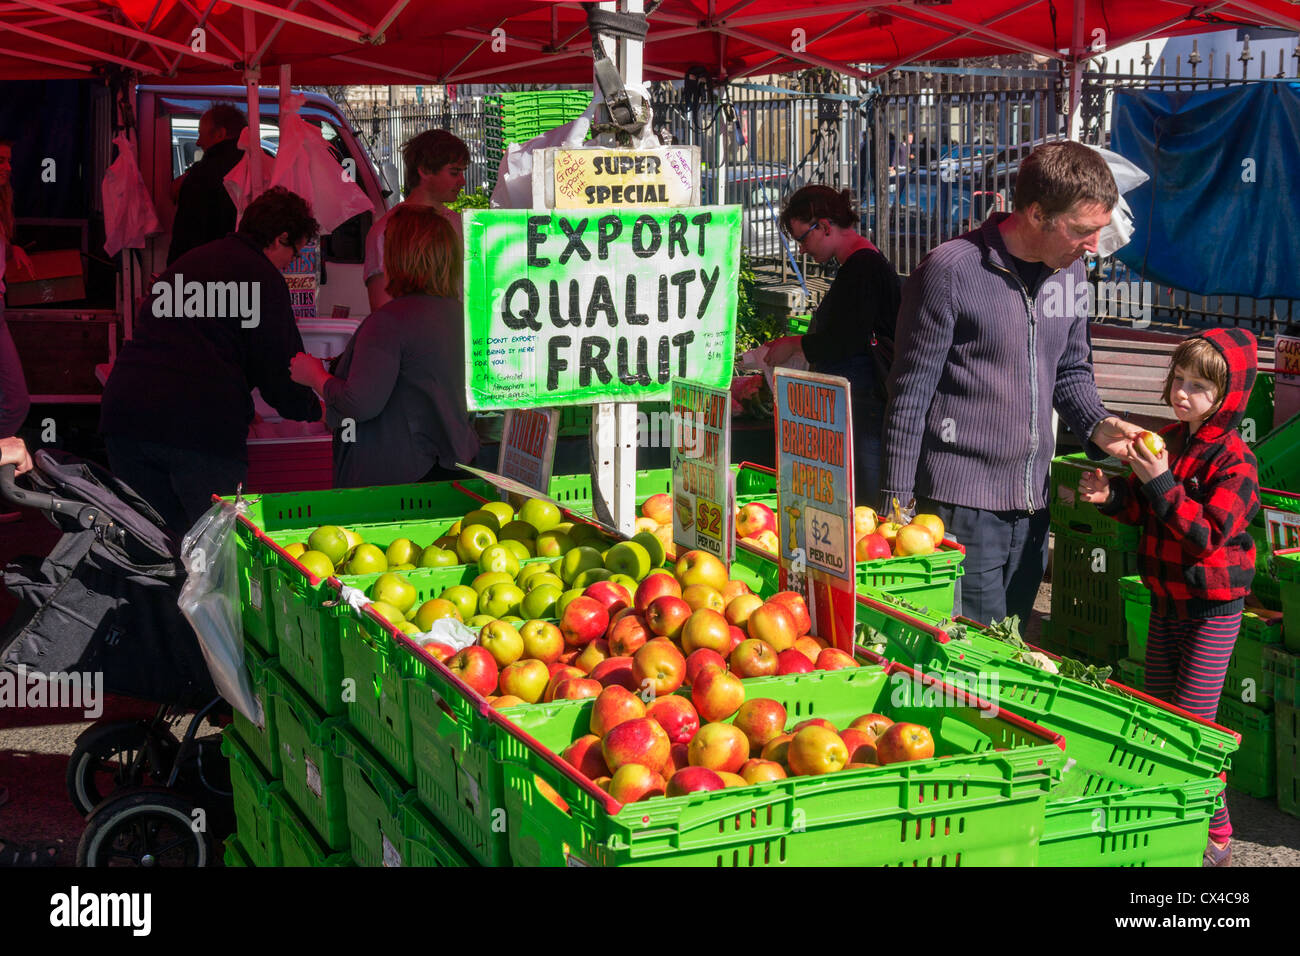 Export quality fruit for sale at a farmer's market in Dunedin, Otago, New Zealand. - Stock Image